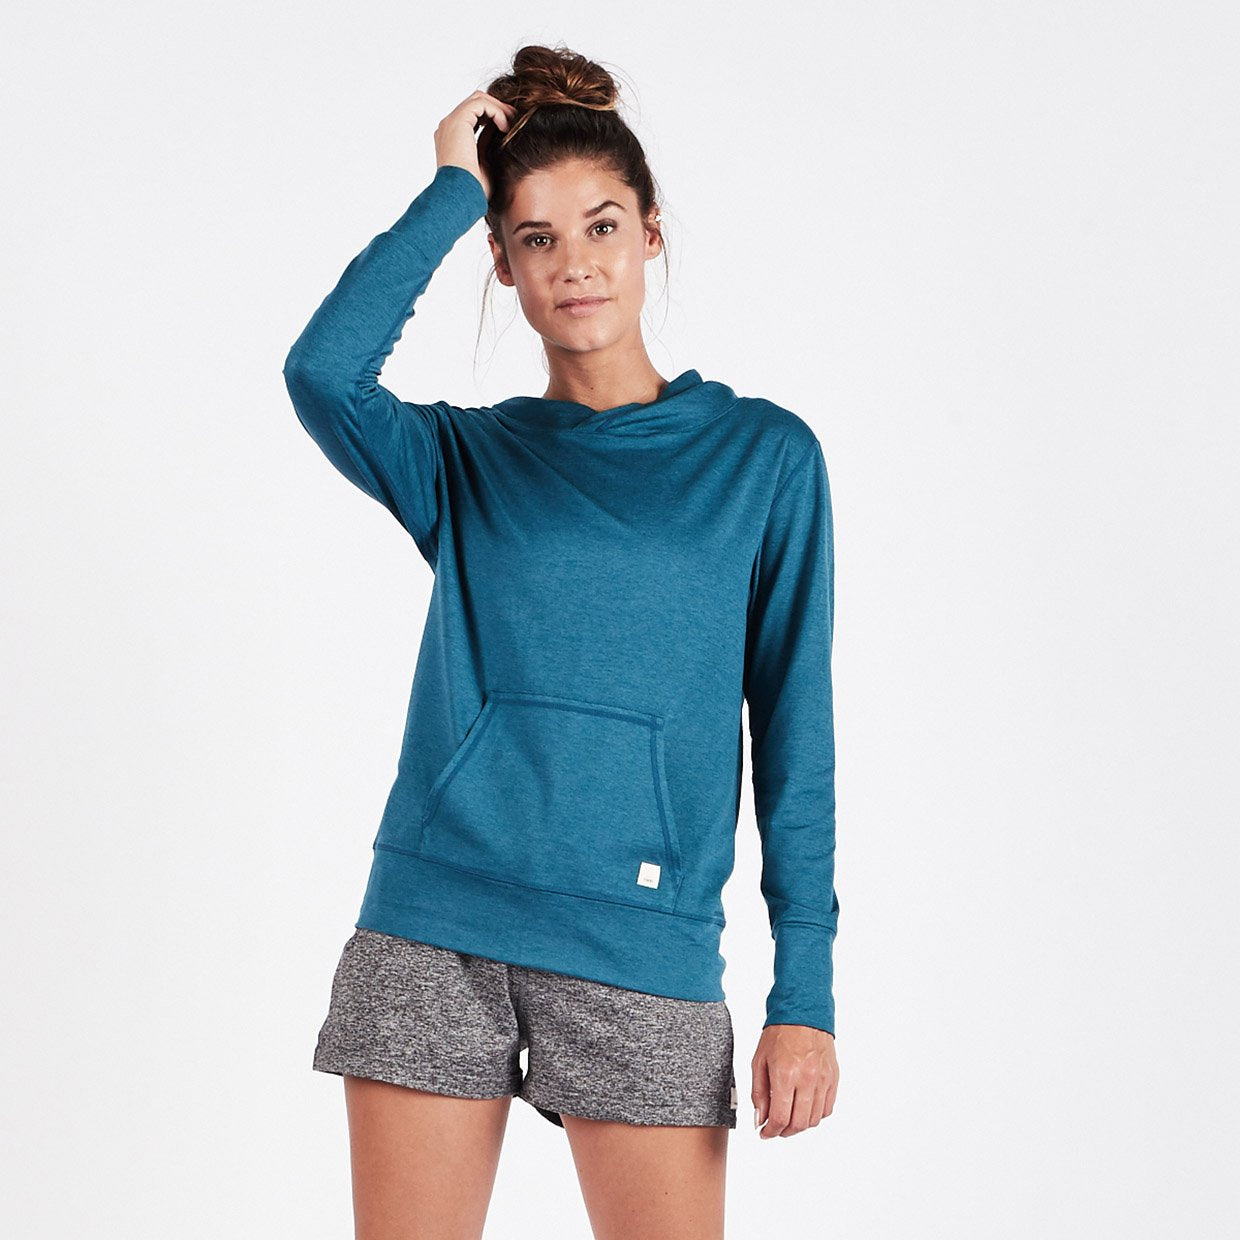 Halo Performance Pullover - Tide Heather - Tide Heather 1